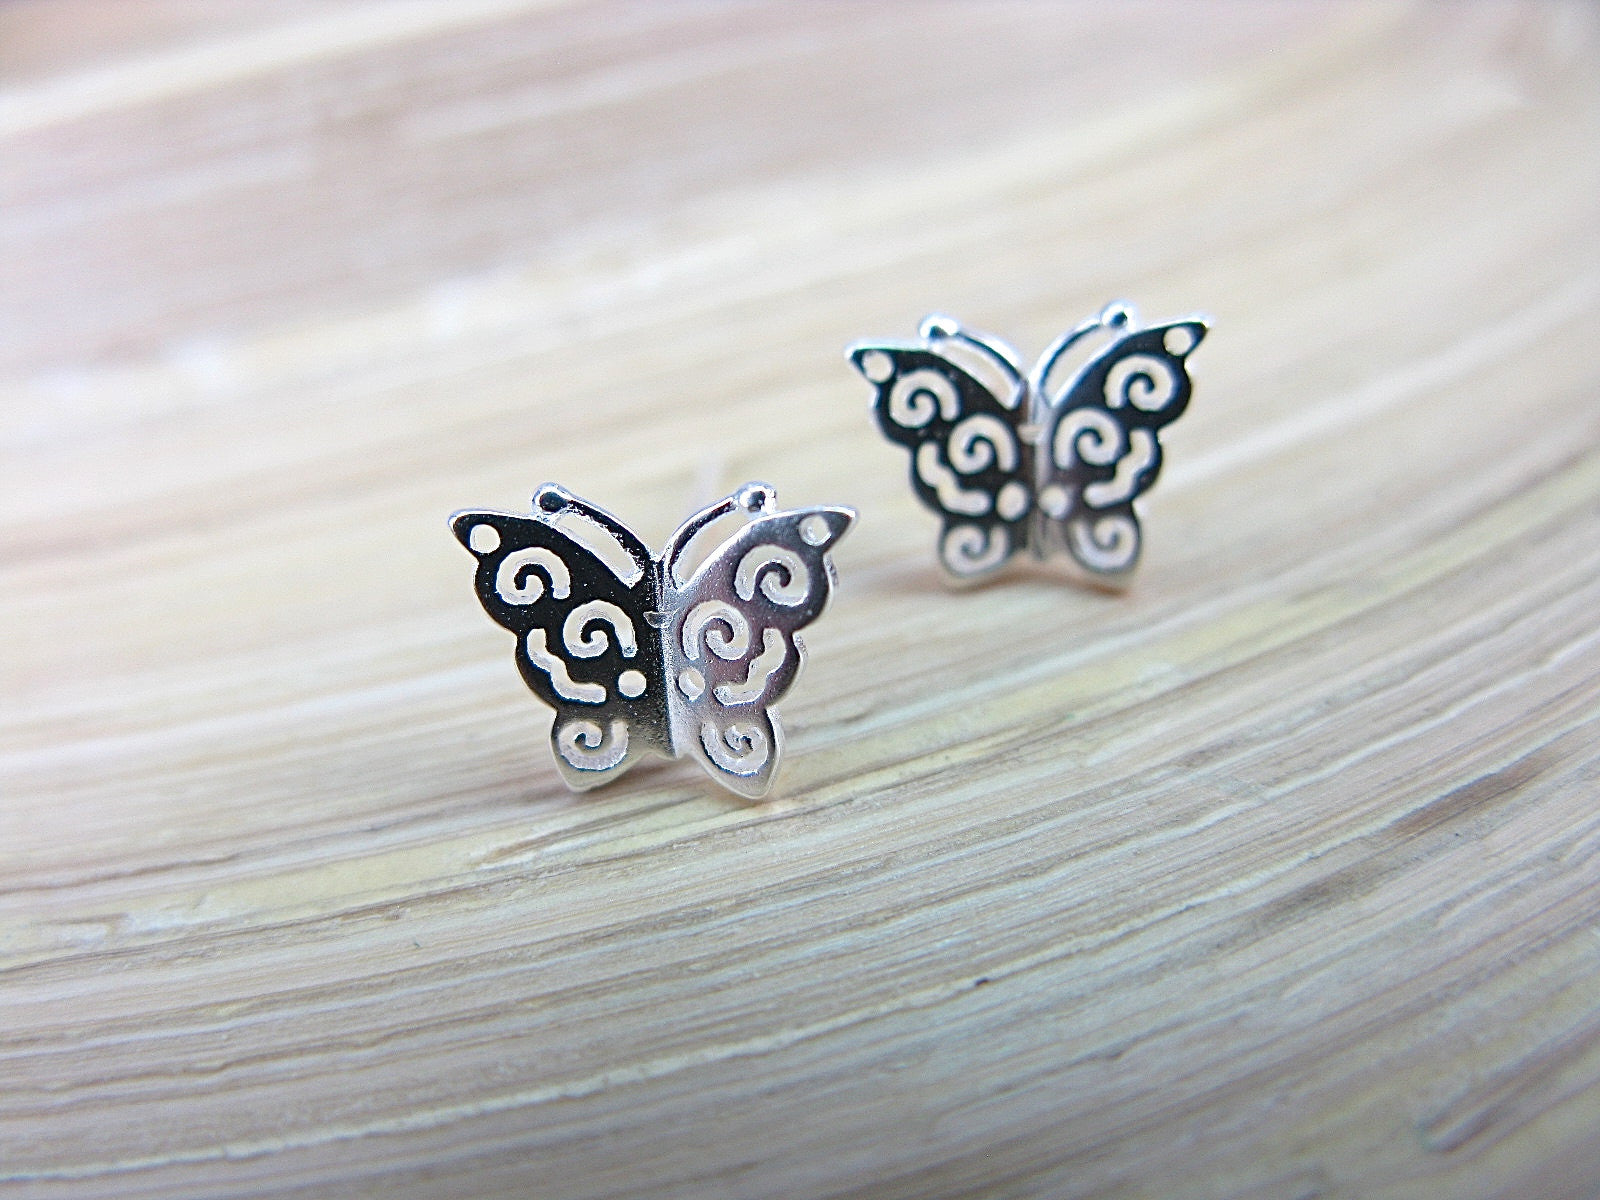 Butterfly Fiiigree Insect 925 Sterling Silver Stud Earrings Stud Faith Owl - Faith Owl